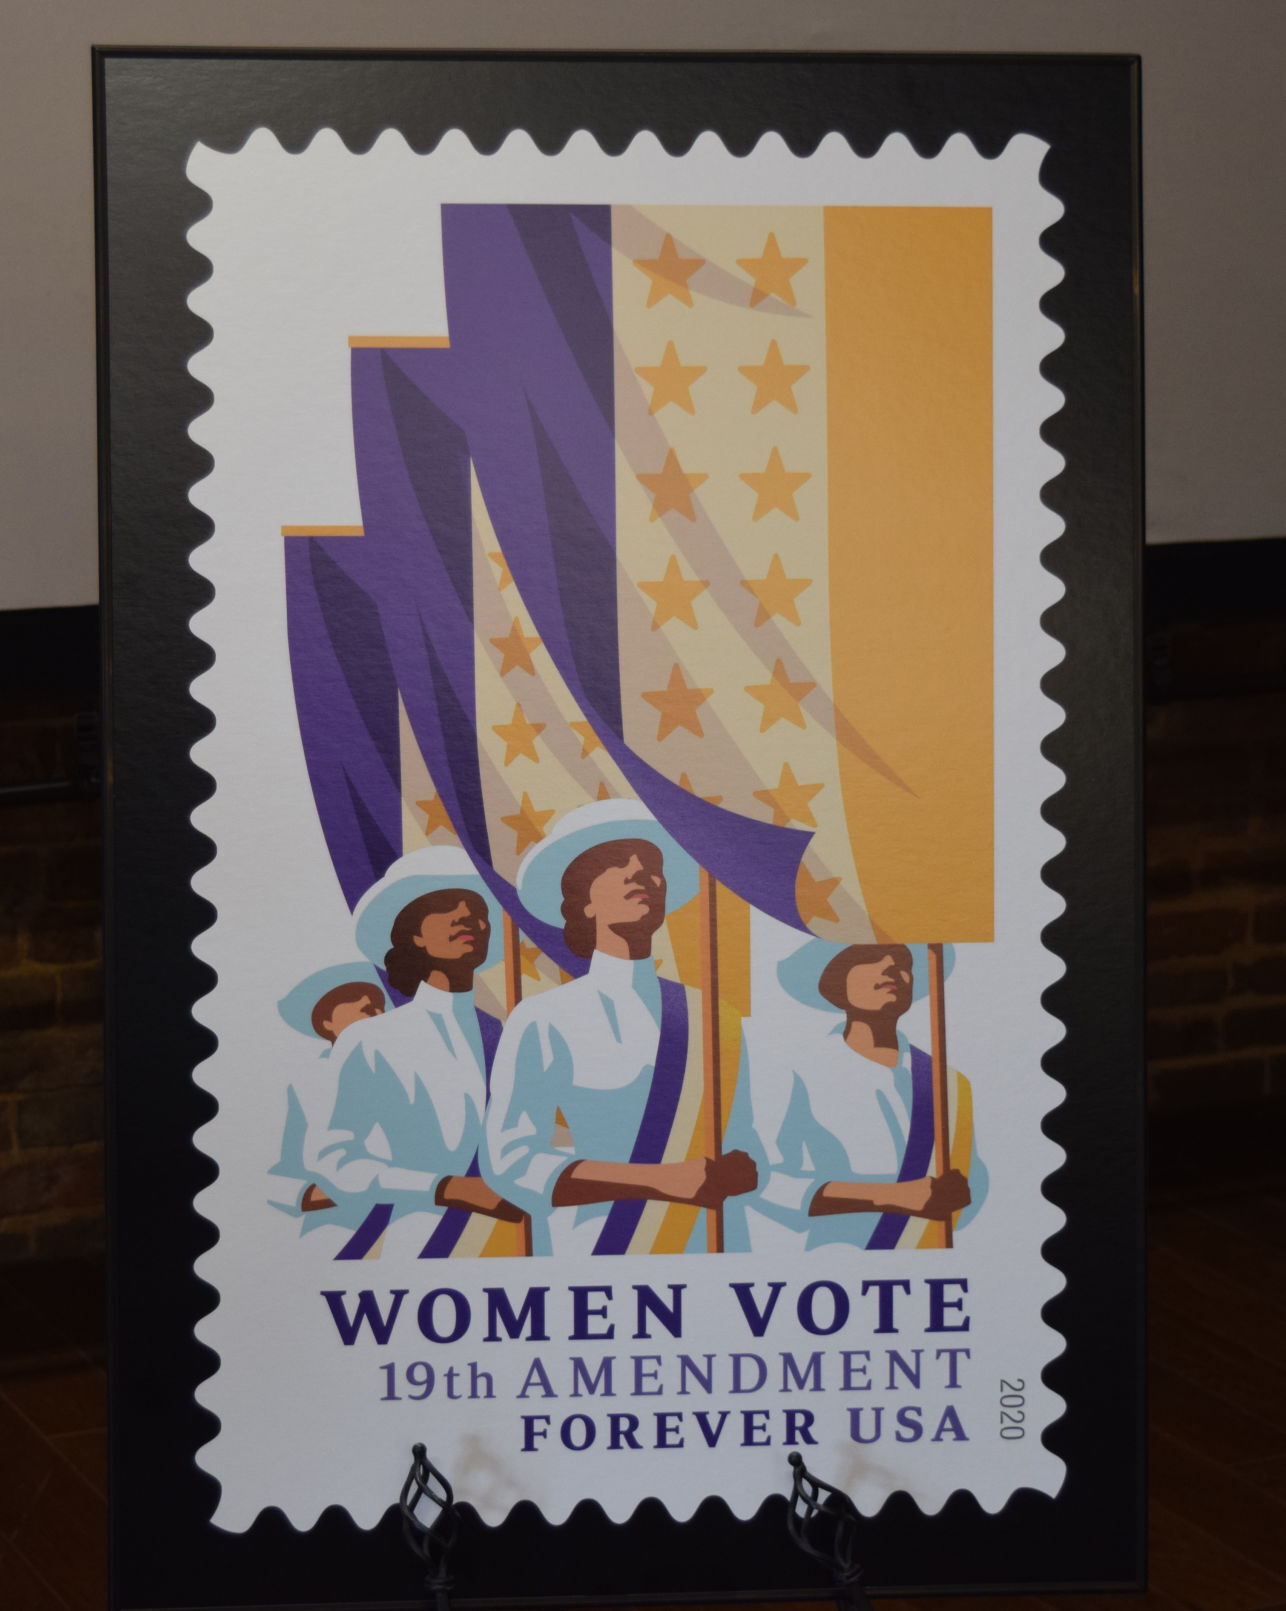 19th Amendment stamp unveiling